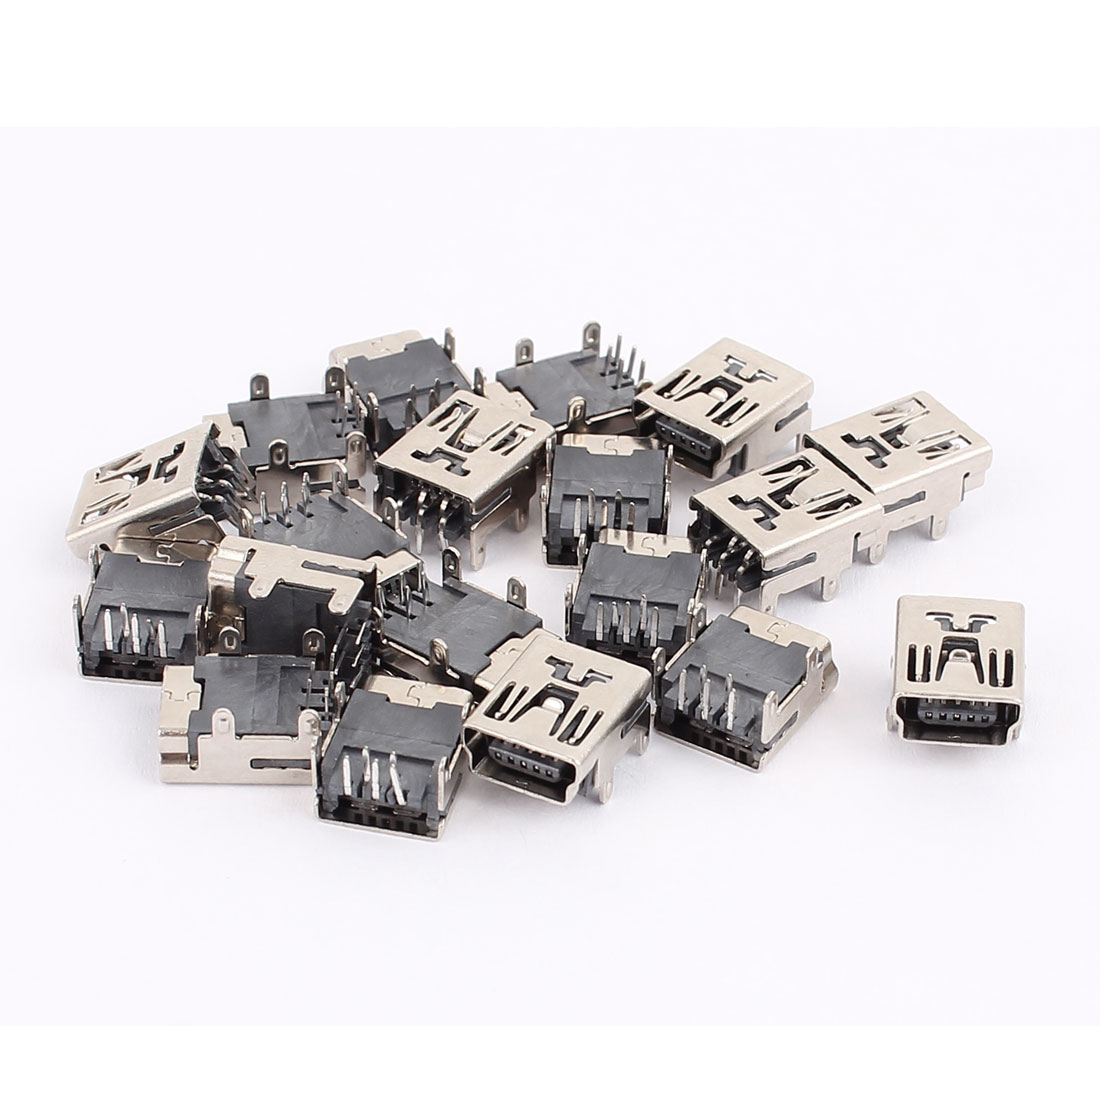 19PCS 5P Type B SMT SMD Mini USB Female Socket Jack Connector